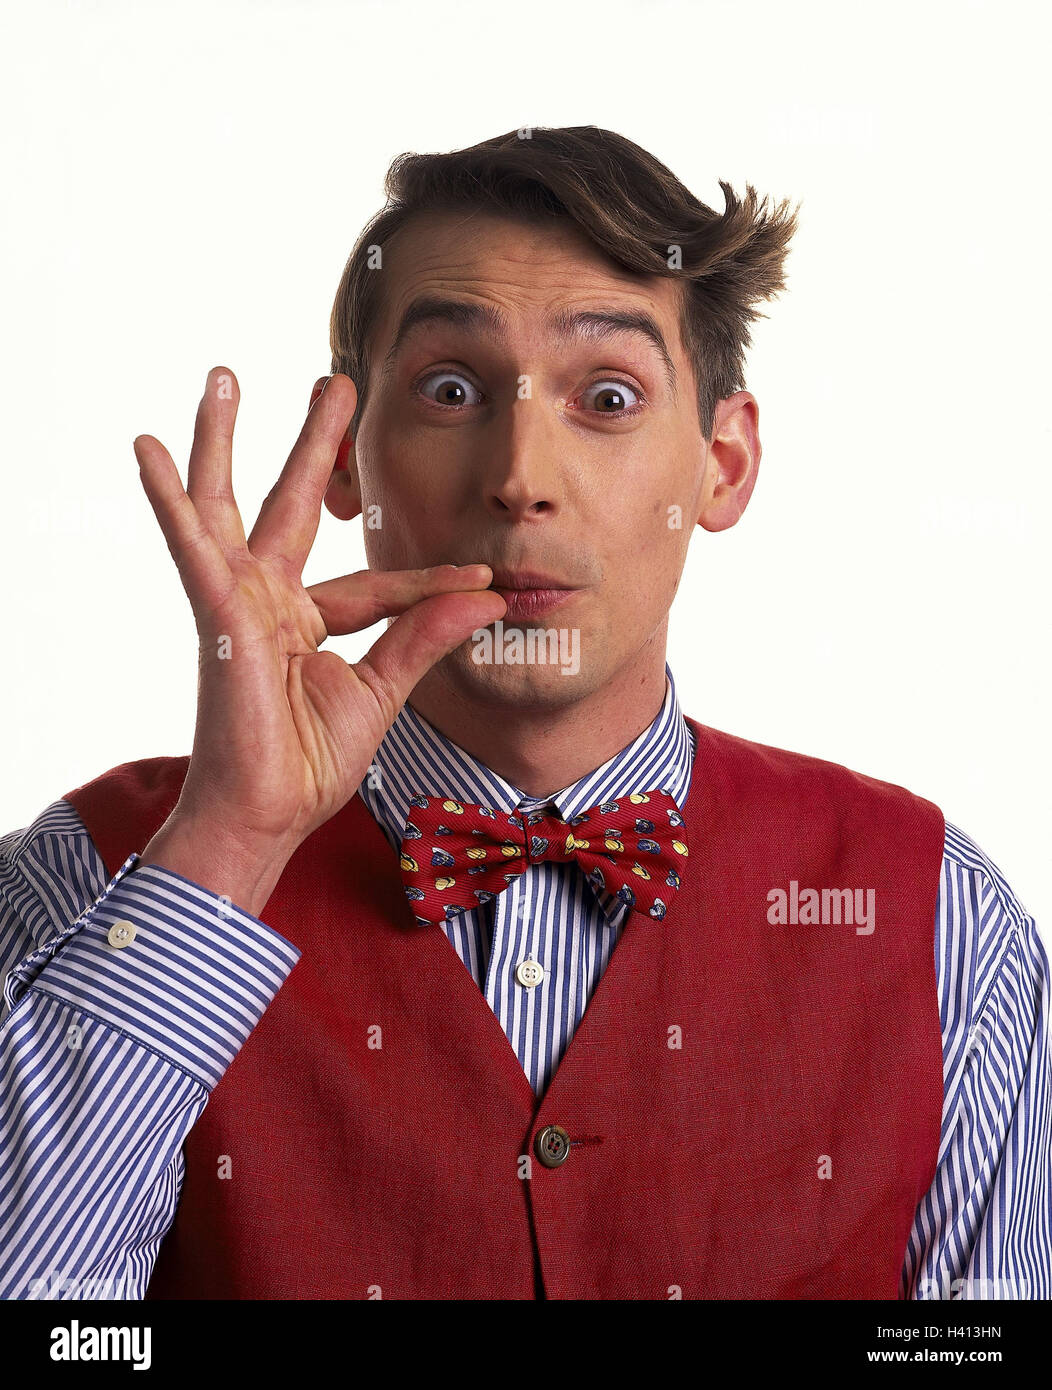 Man, young, page apex, mop hair, shirt, waistcoat, fly, gesture, perfectly, o.k., portrait, Men, studio, cut out, - Stock Image